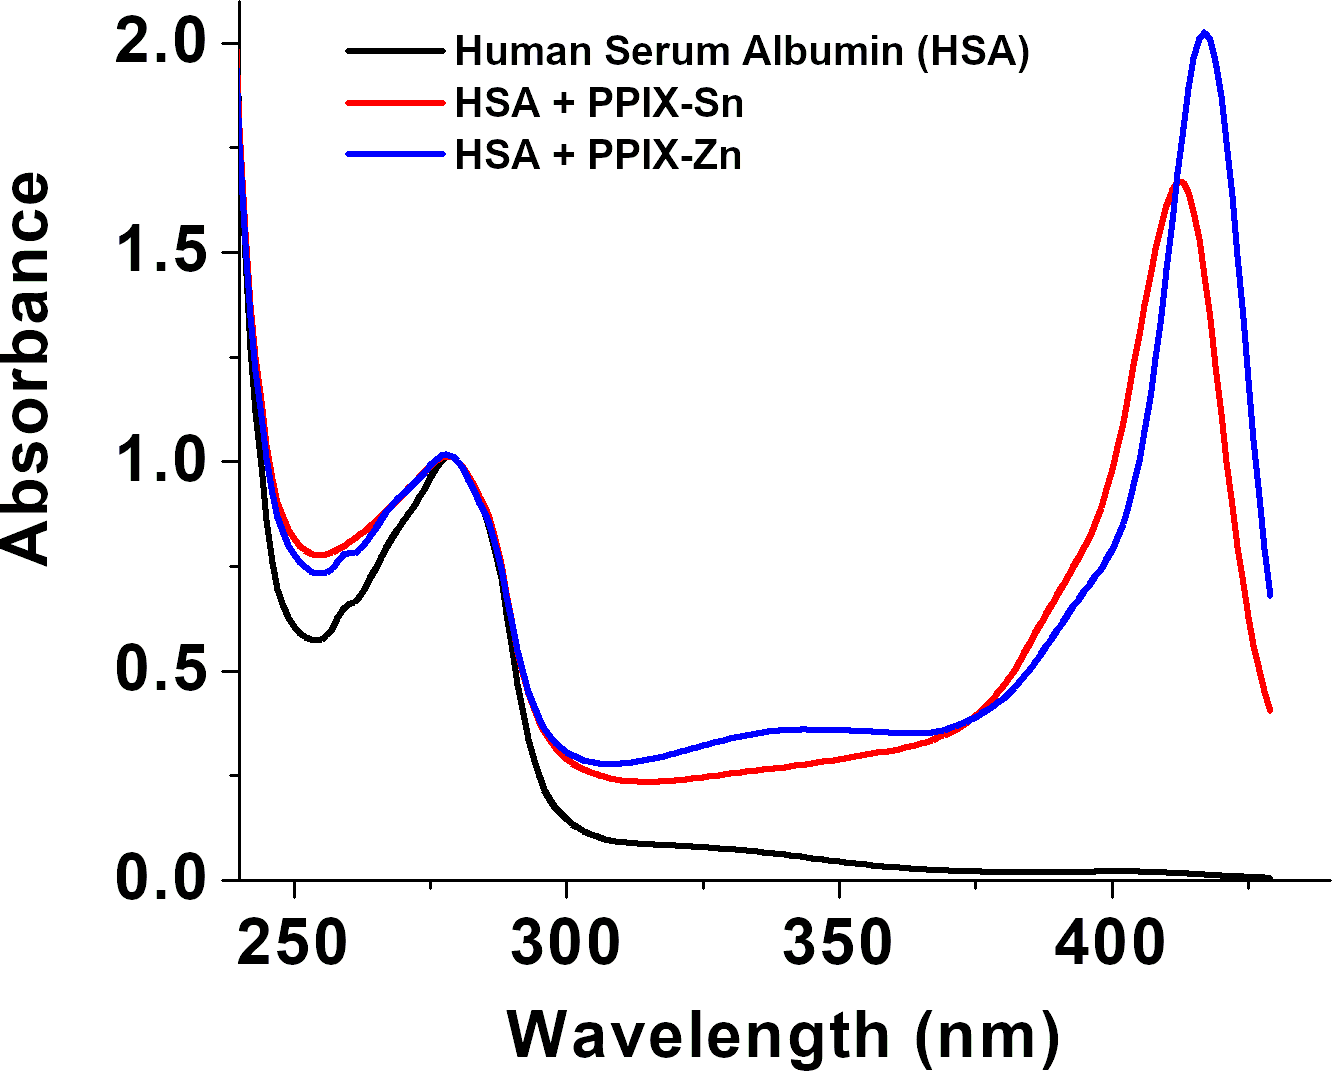 Figure 1. Absorbance spectra of Human Serum (HSA), HSA+PPIX-Sn and HSA+PPIX-Zn